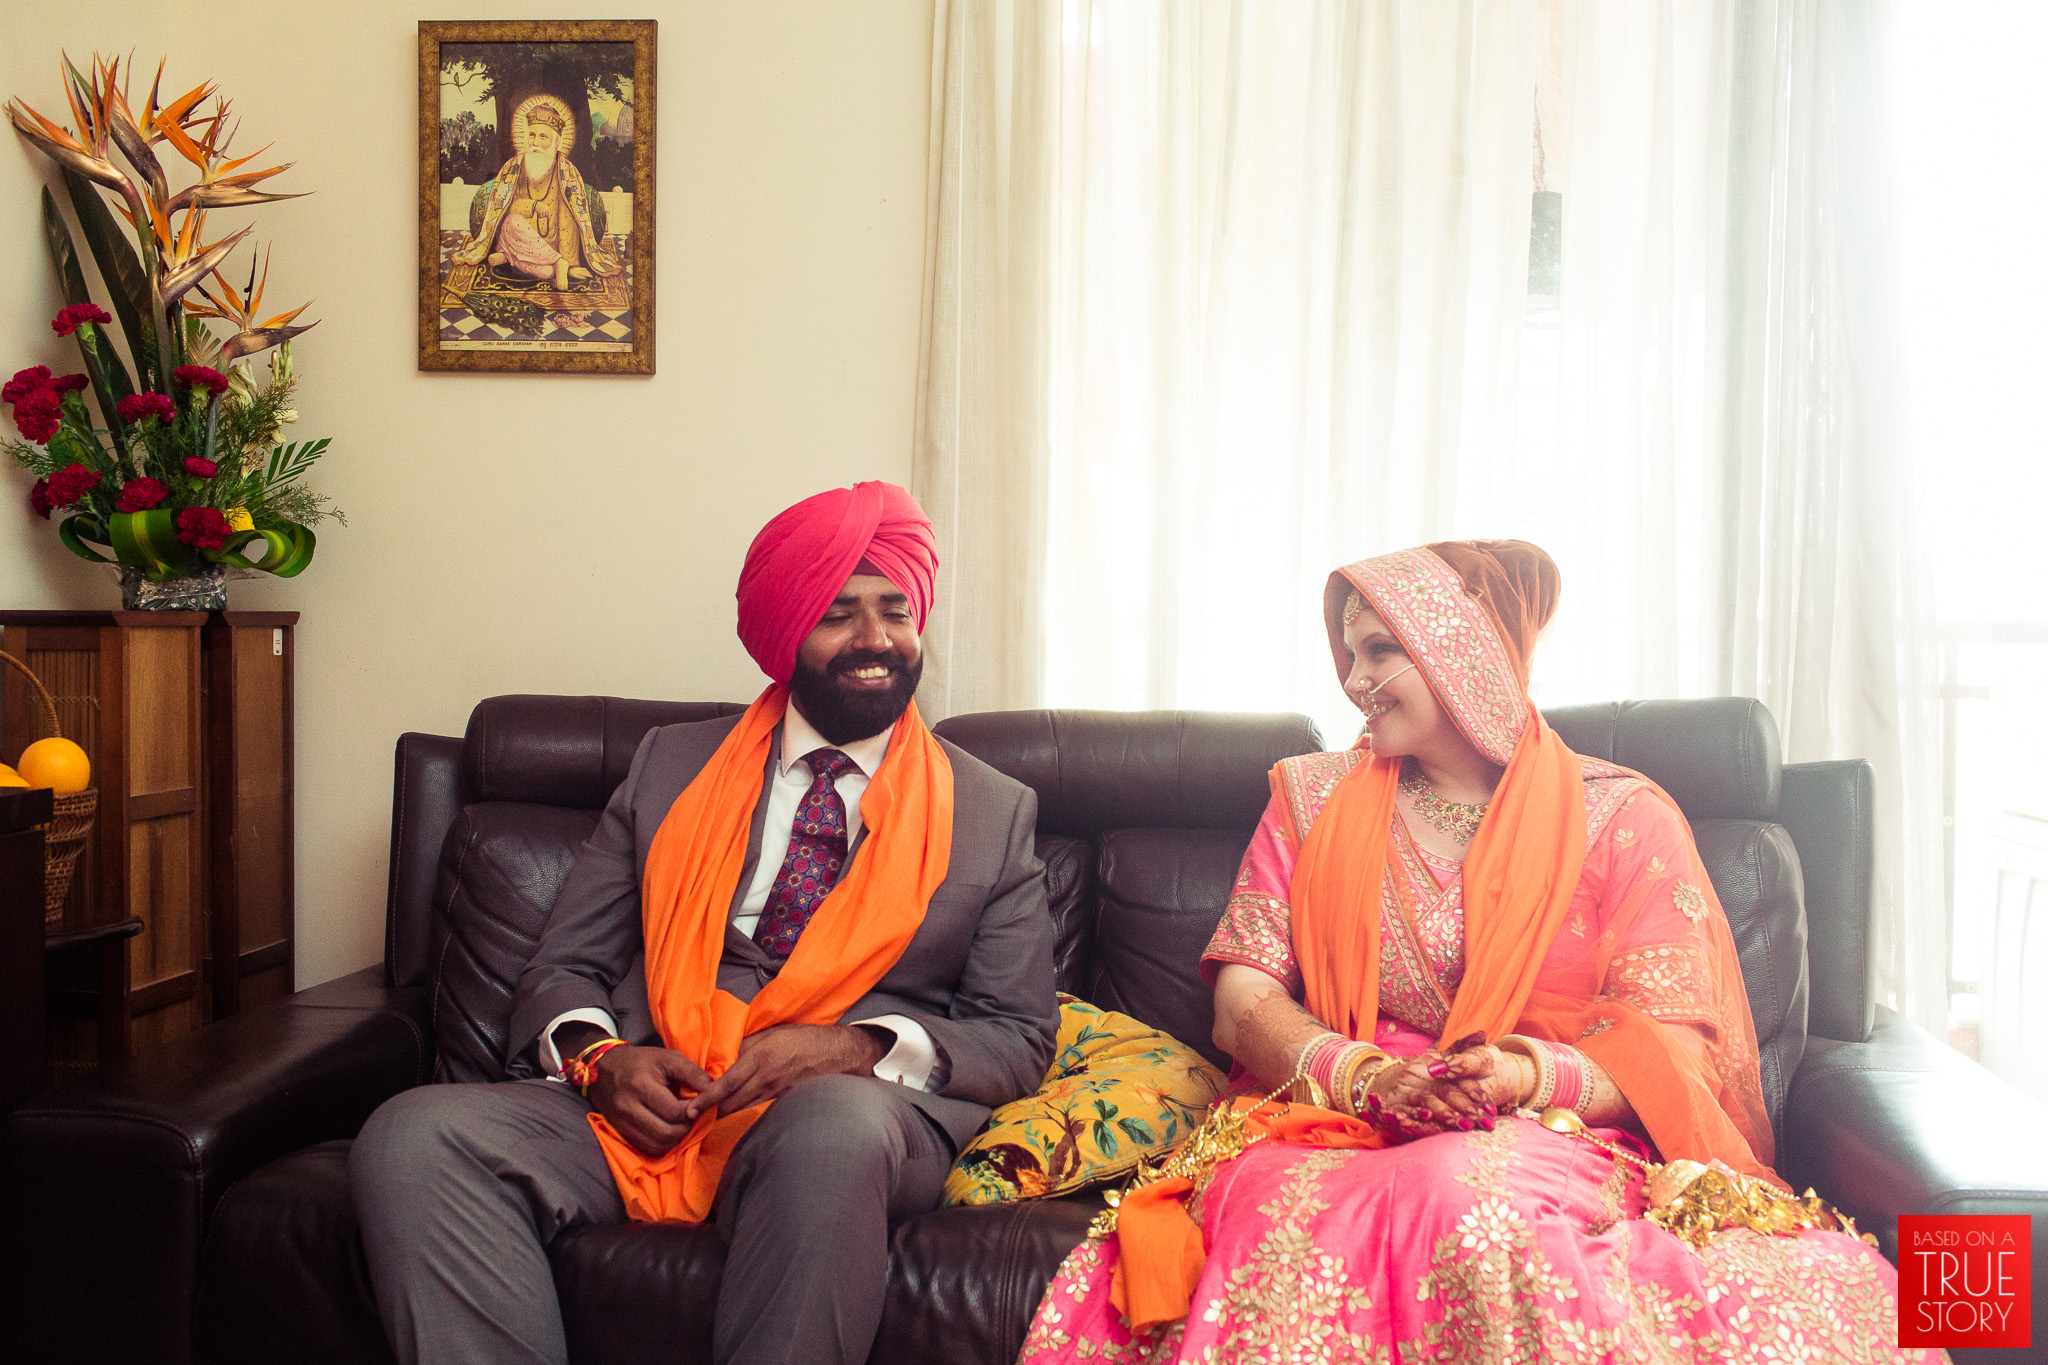 candid-photography-sikh-wedding-bangalore-0038.jpg